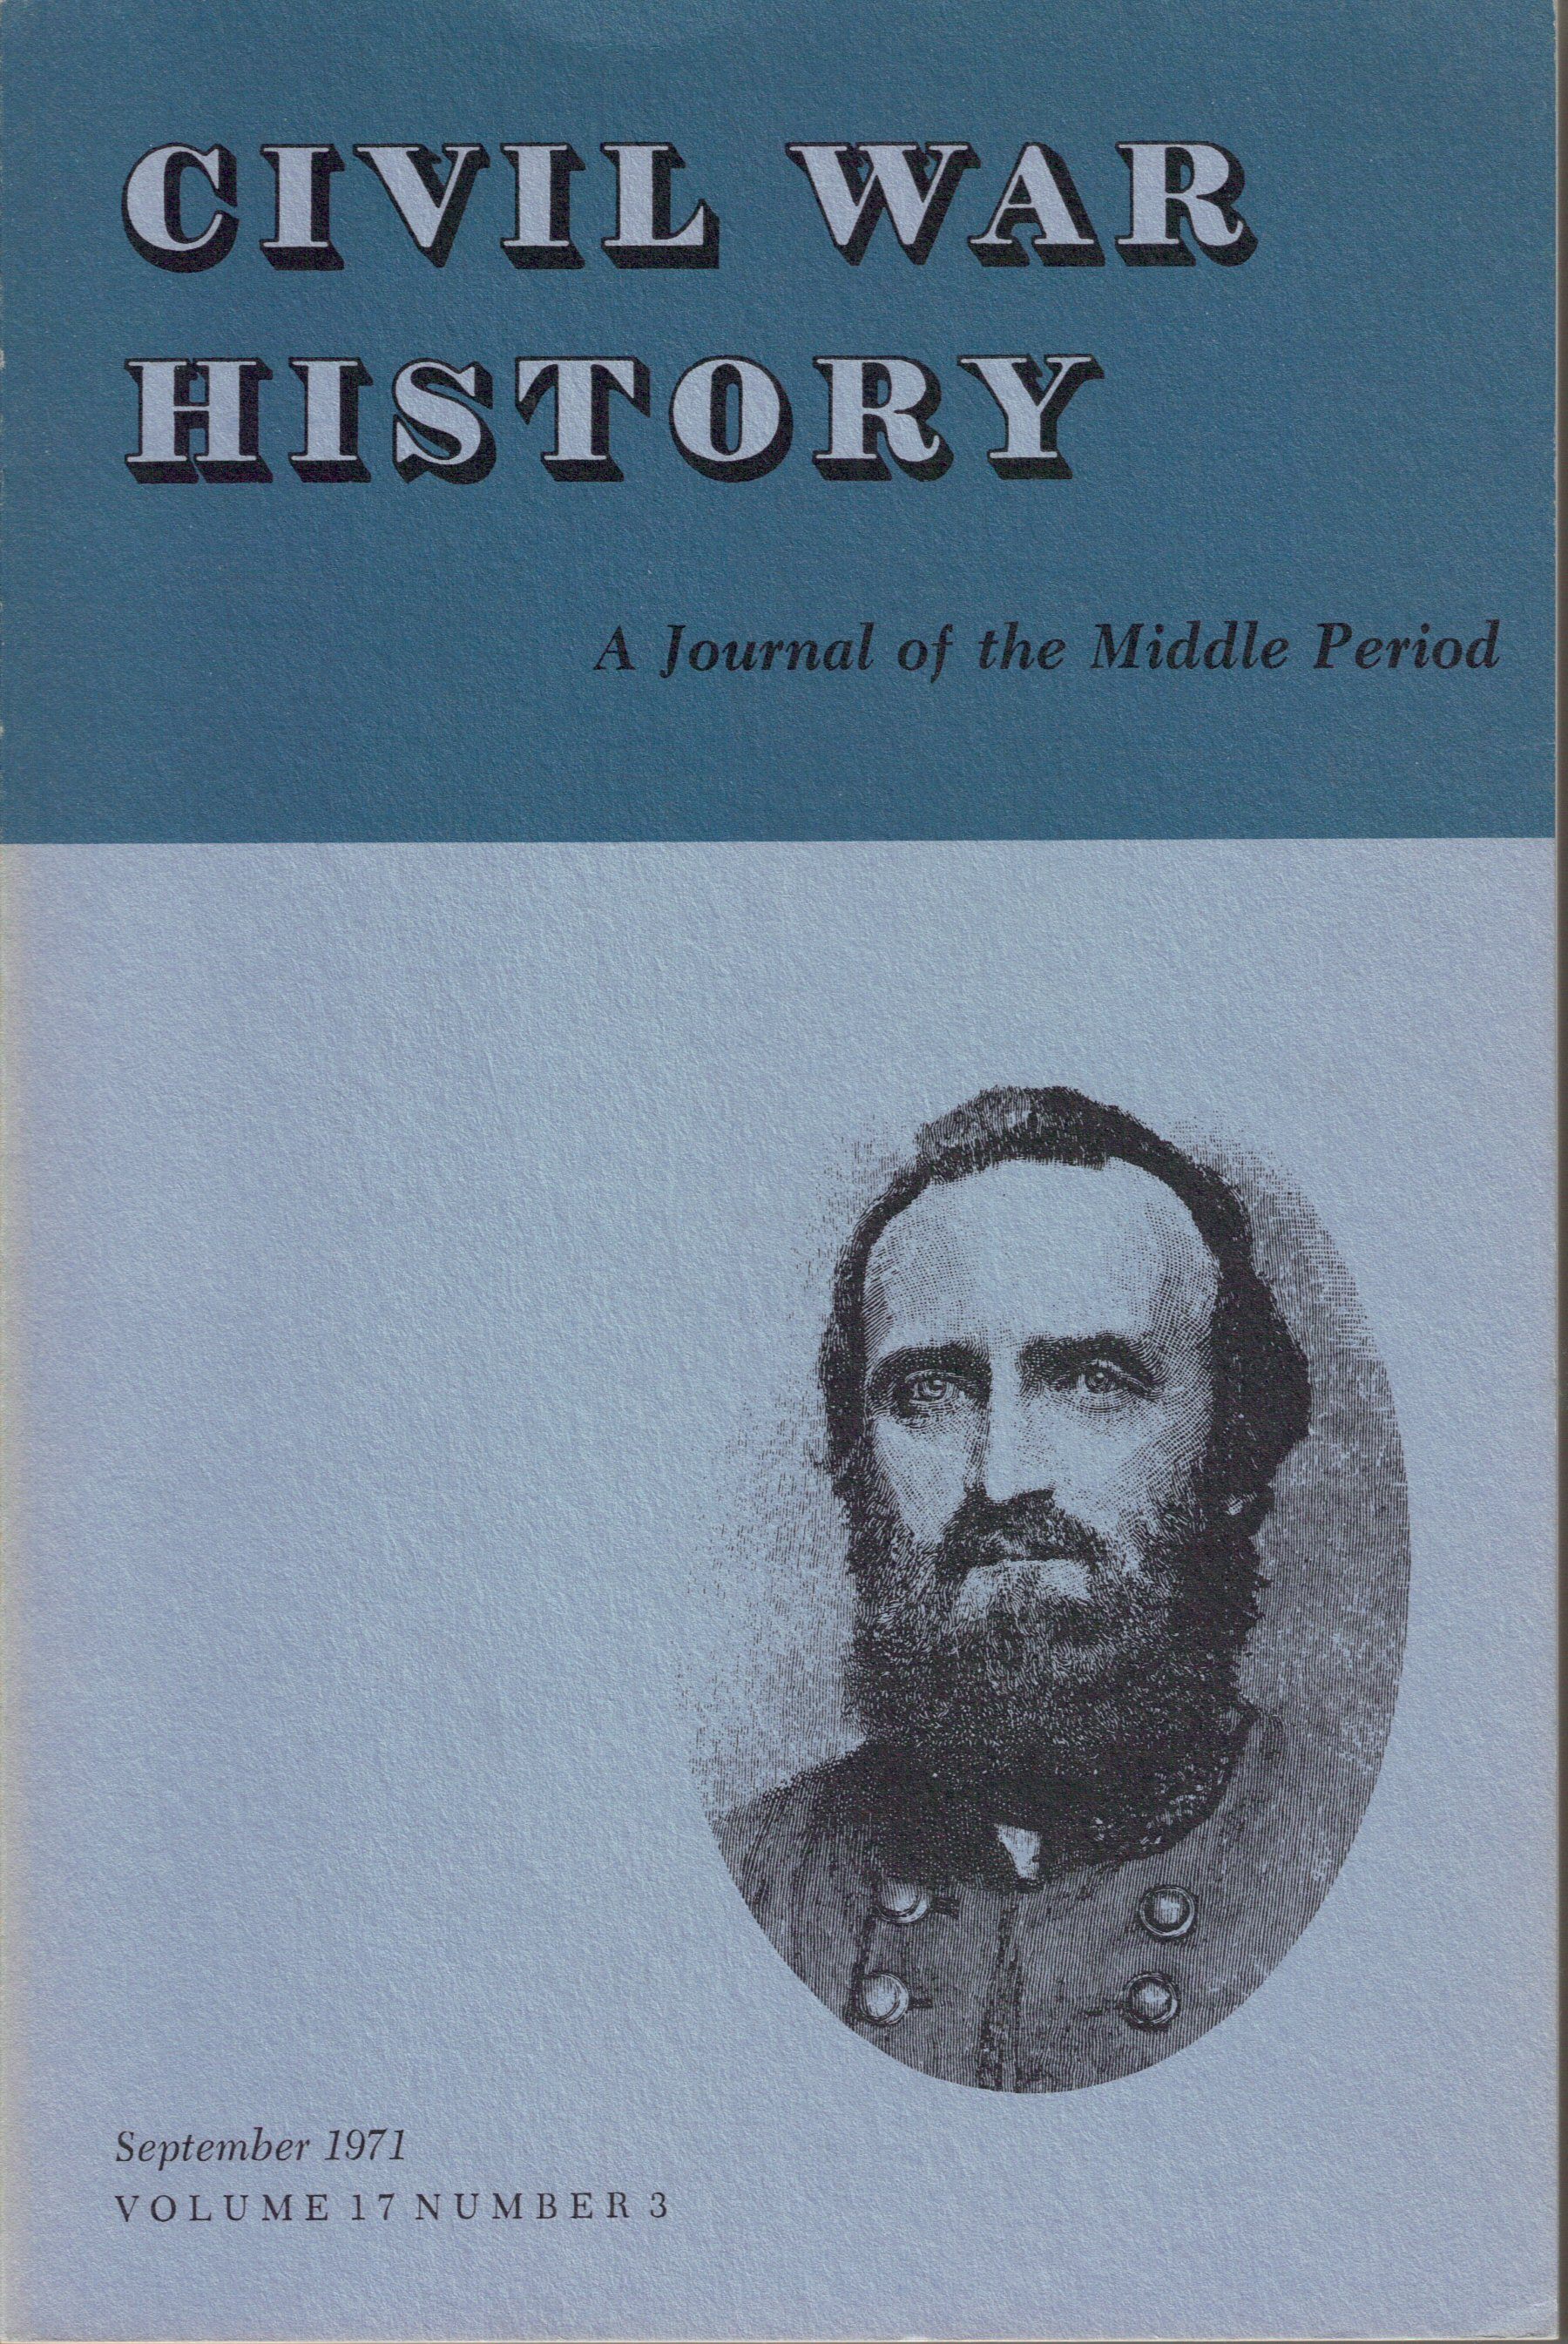 Civil War History, Volume 17, Number 3 (September 1971)